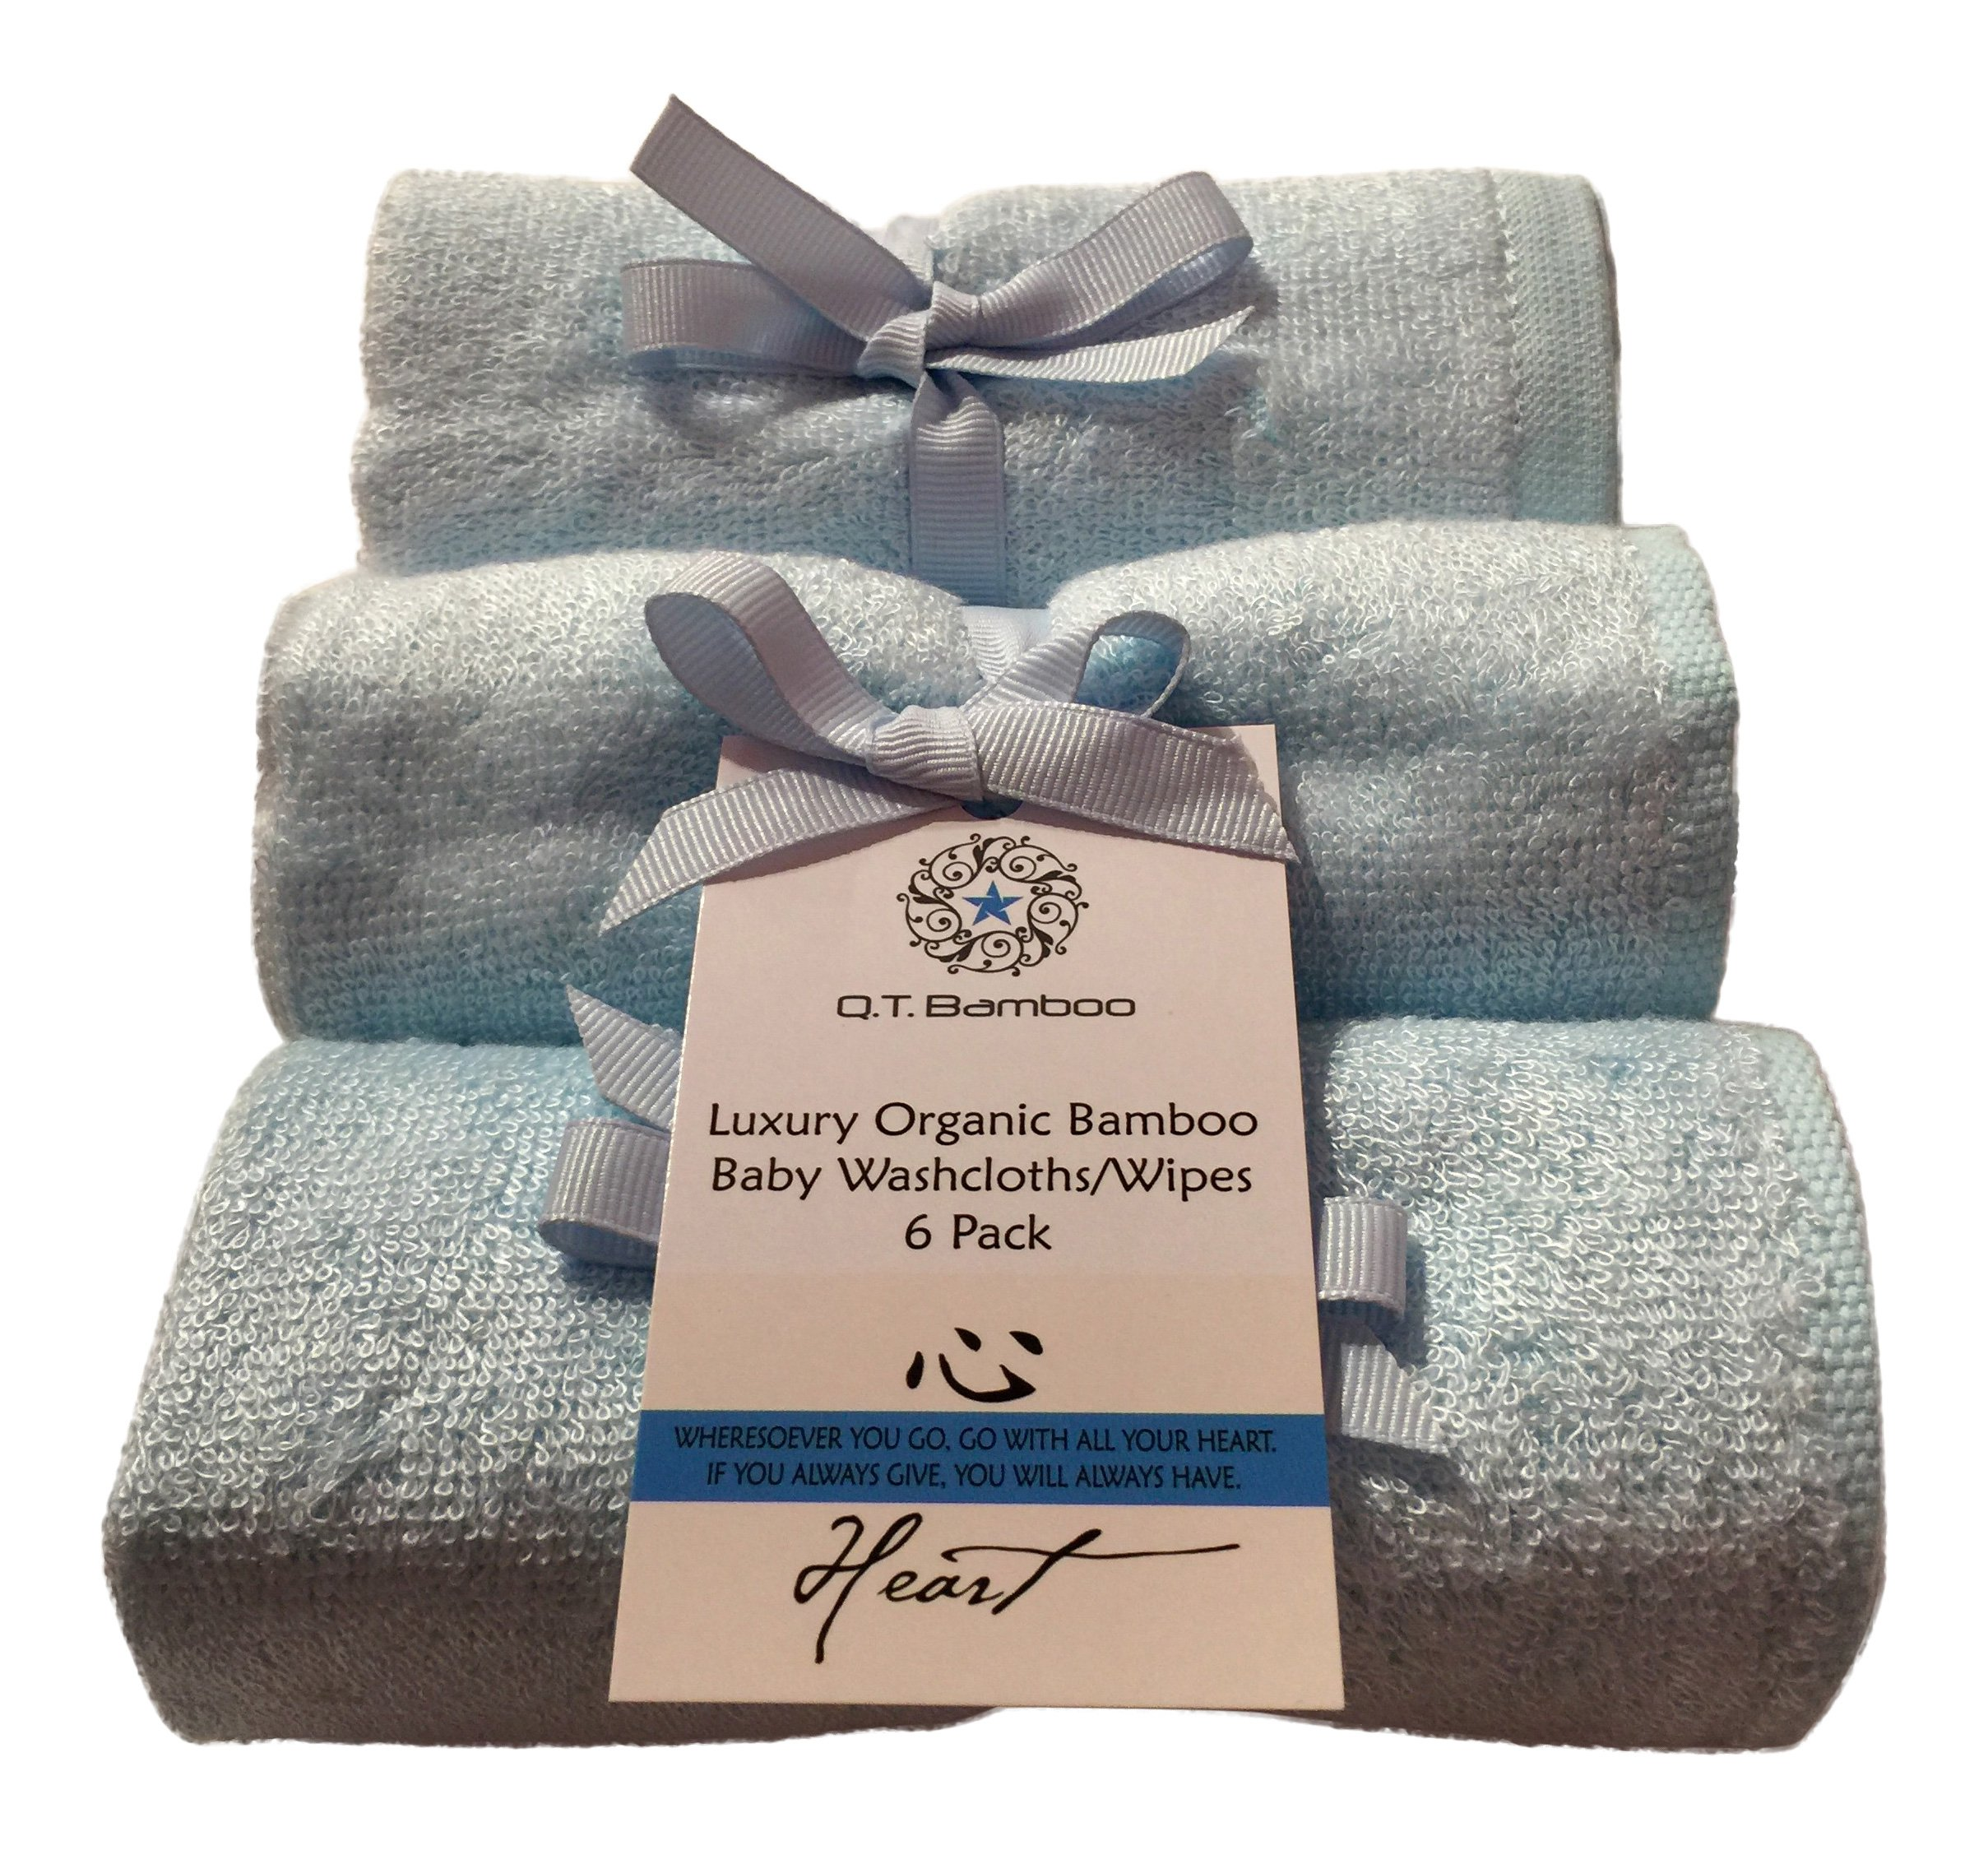 Bamboo Washcloths Face Towels for Sensitive Skin Great for Baby or Adult 6 Pack (Blue) by Q.T. Bamboo